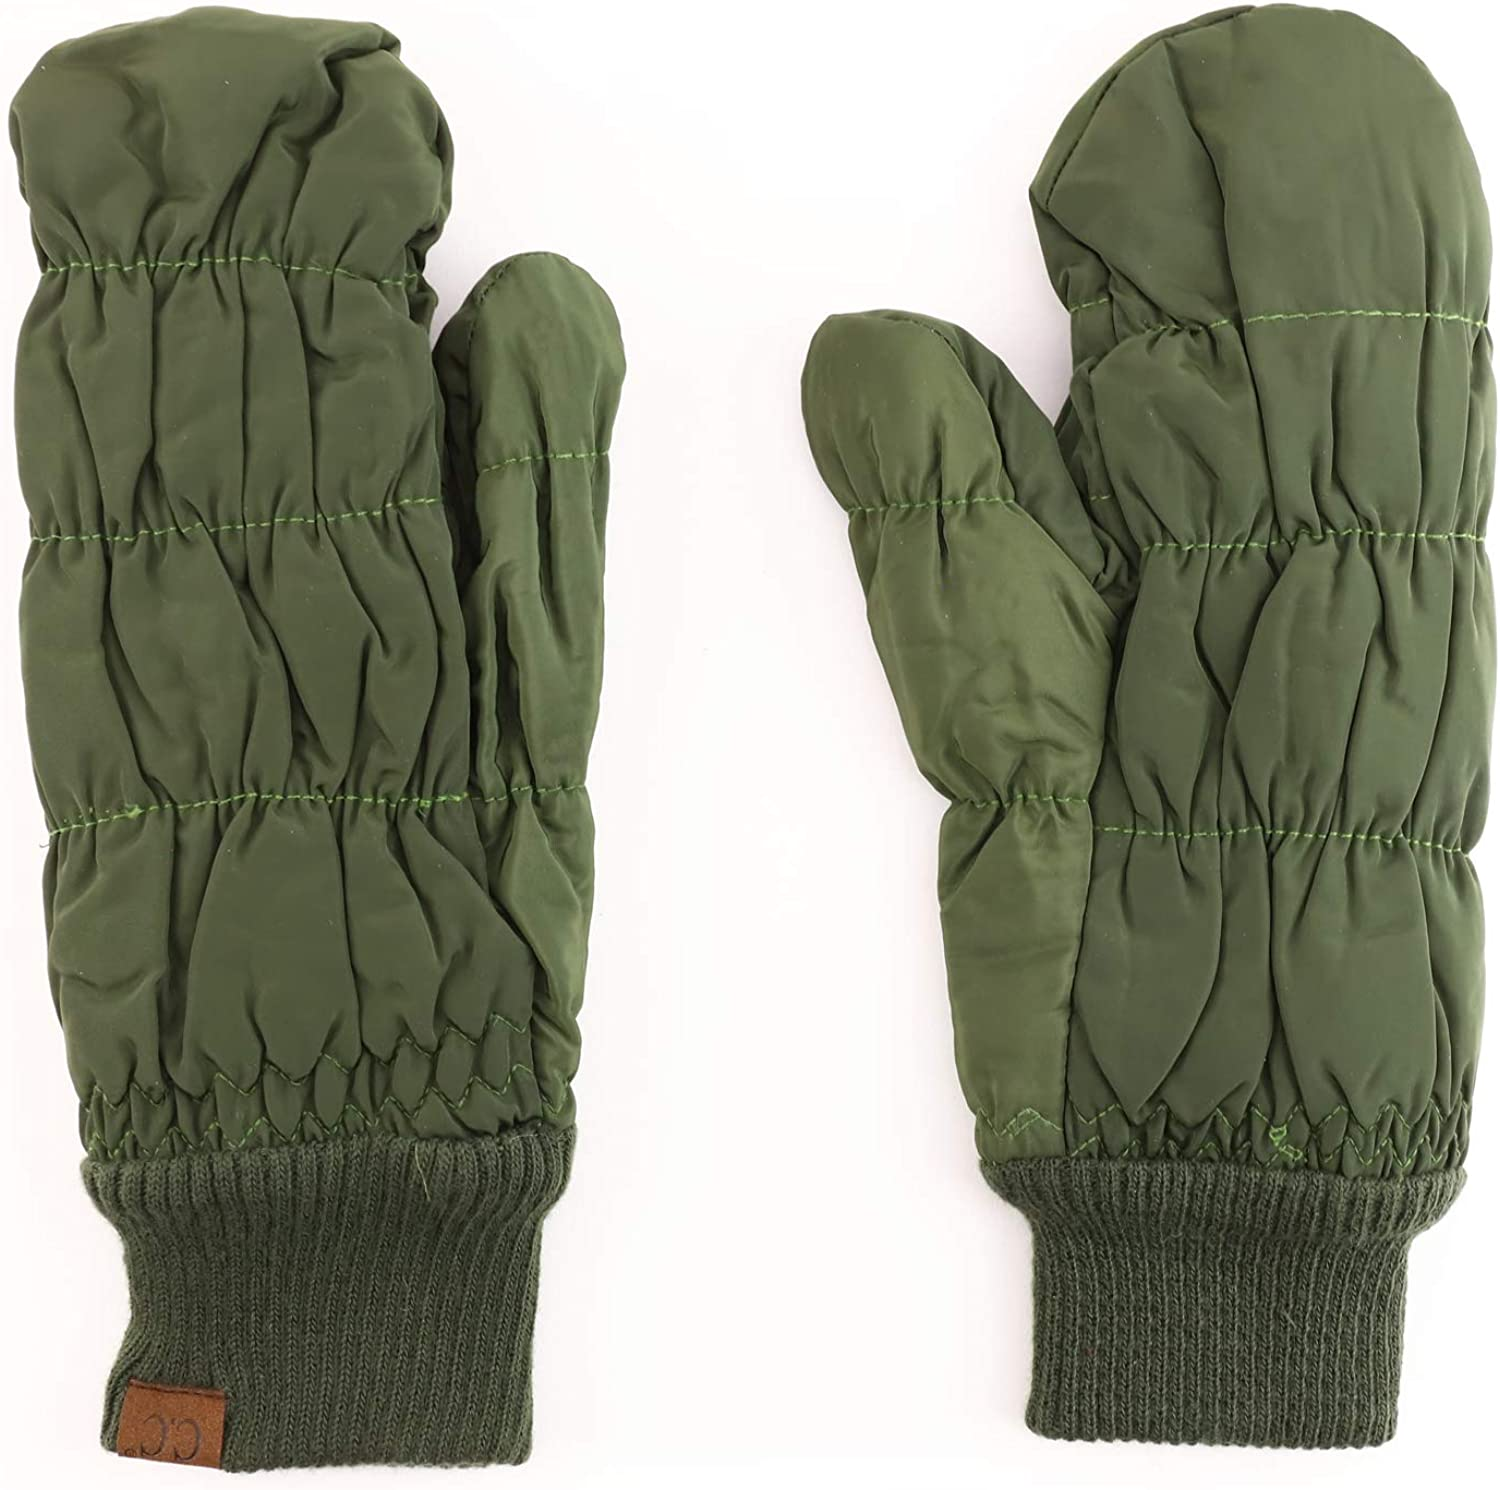 Trendy Apparel Shop Quilted Puffer Mitten Glove with Fleece Lining